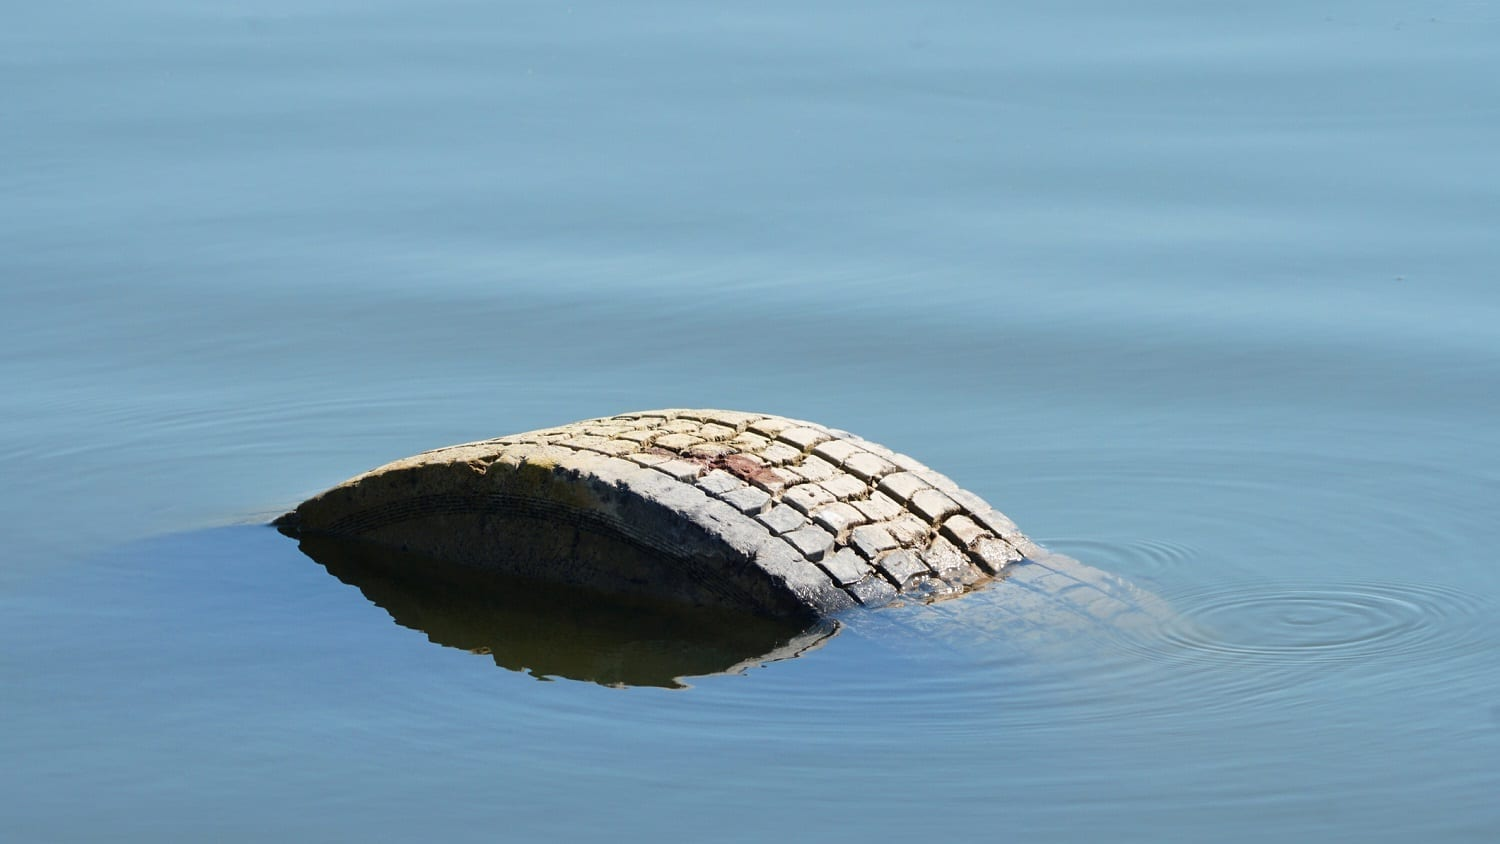 Abandoned tire with edge showing above a lake's surface: Photo 115611969 © Gintas7333 | Dreamstime.com